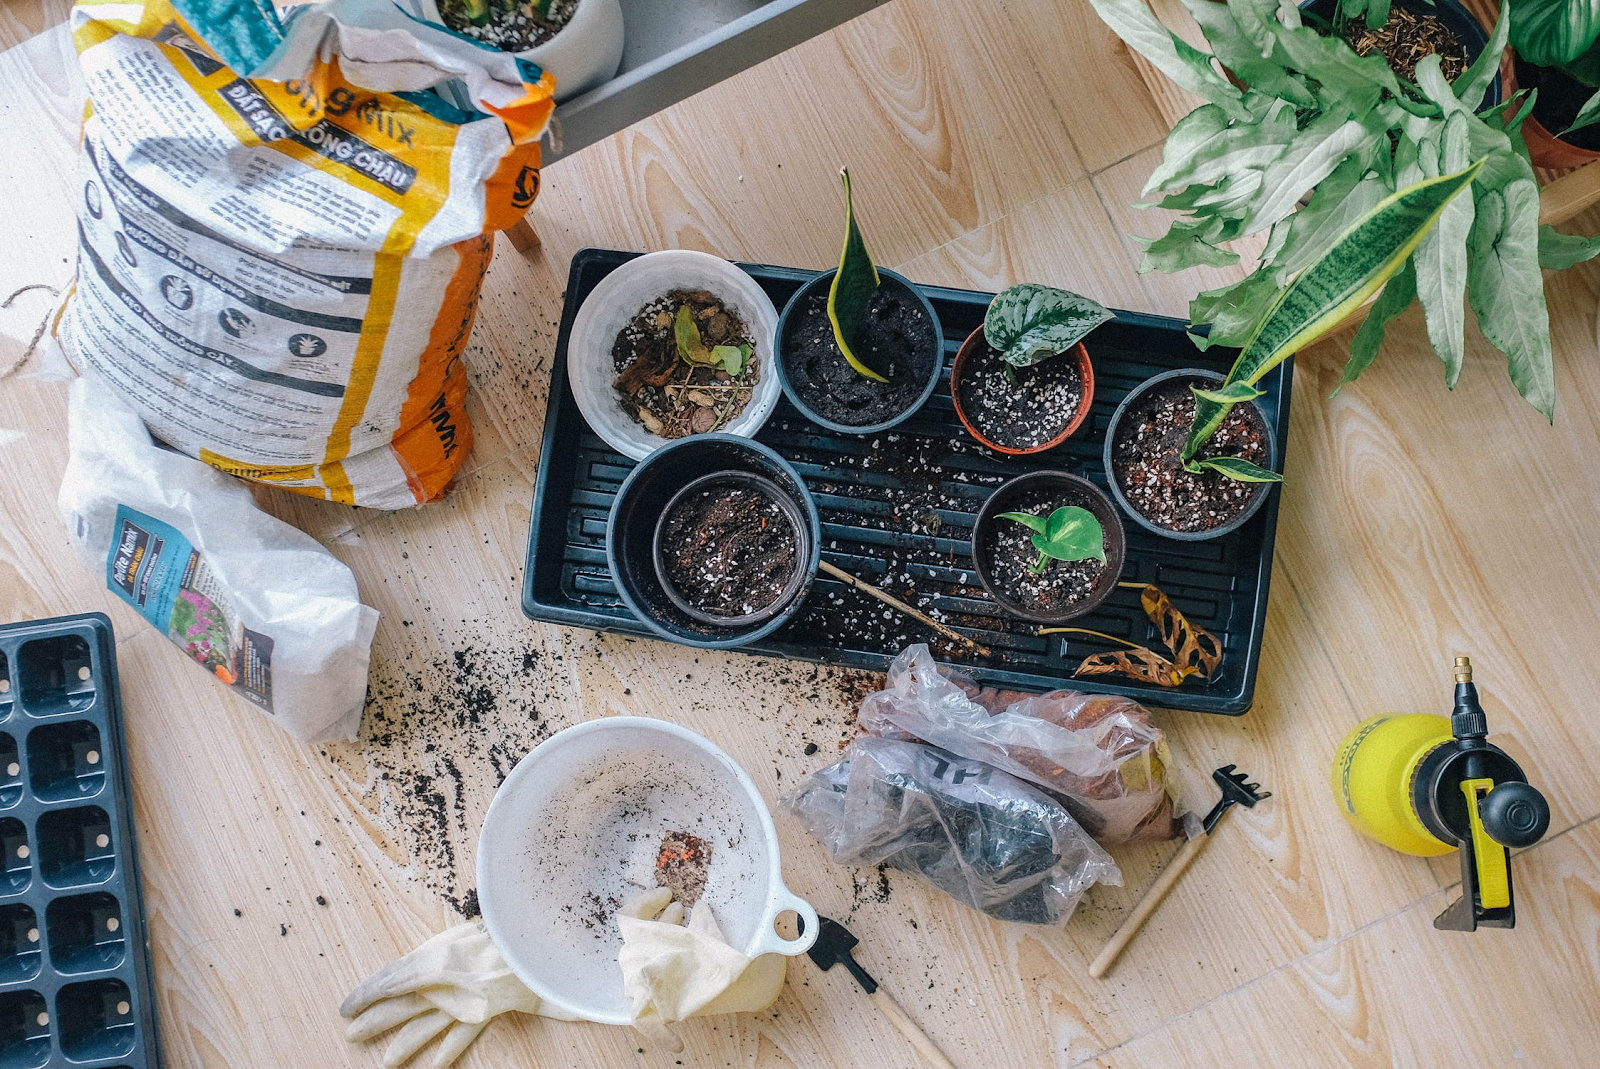 Soil mix and planters for houseplants